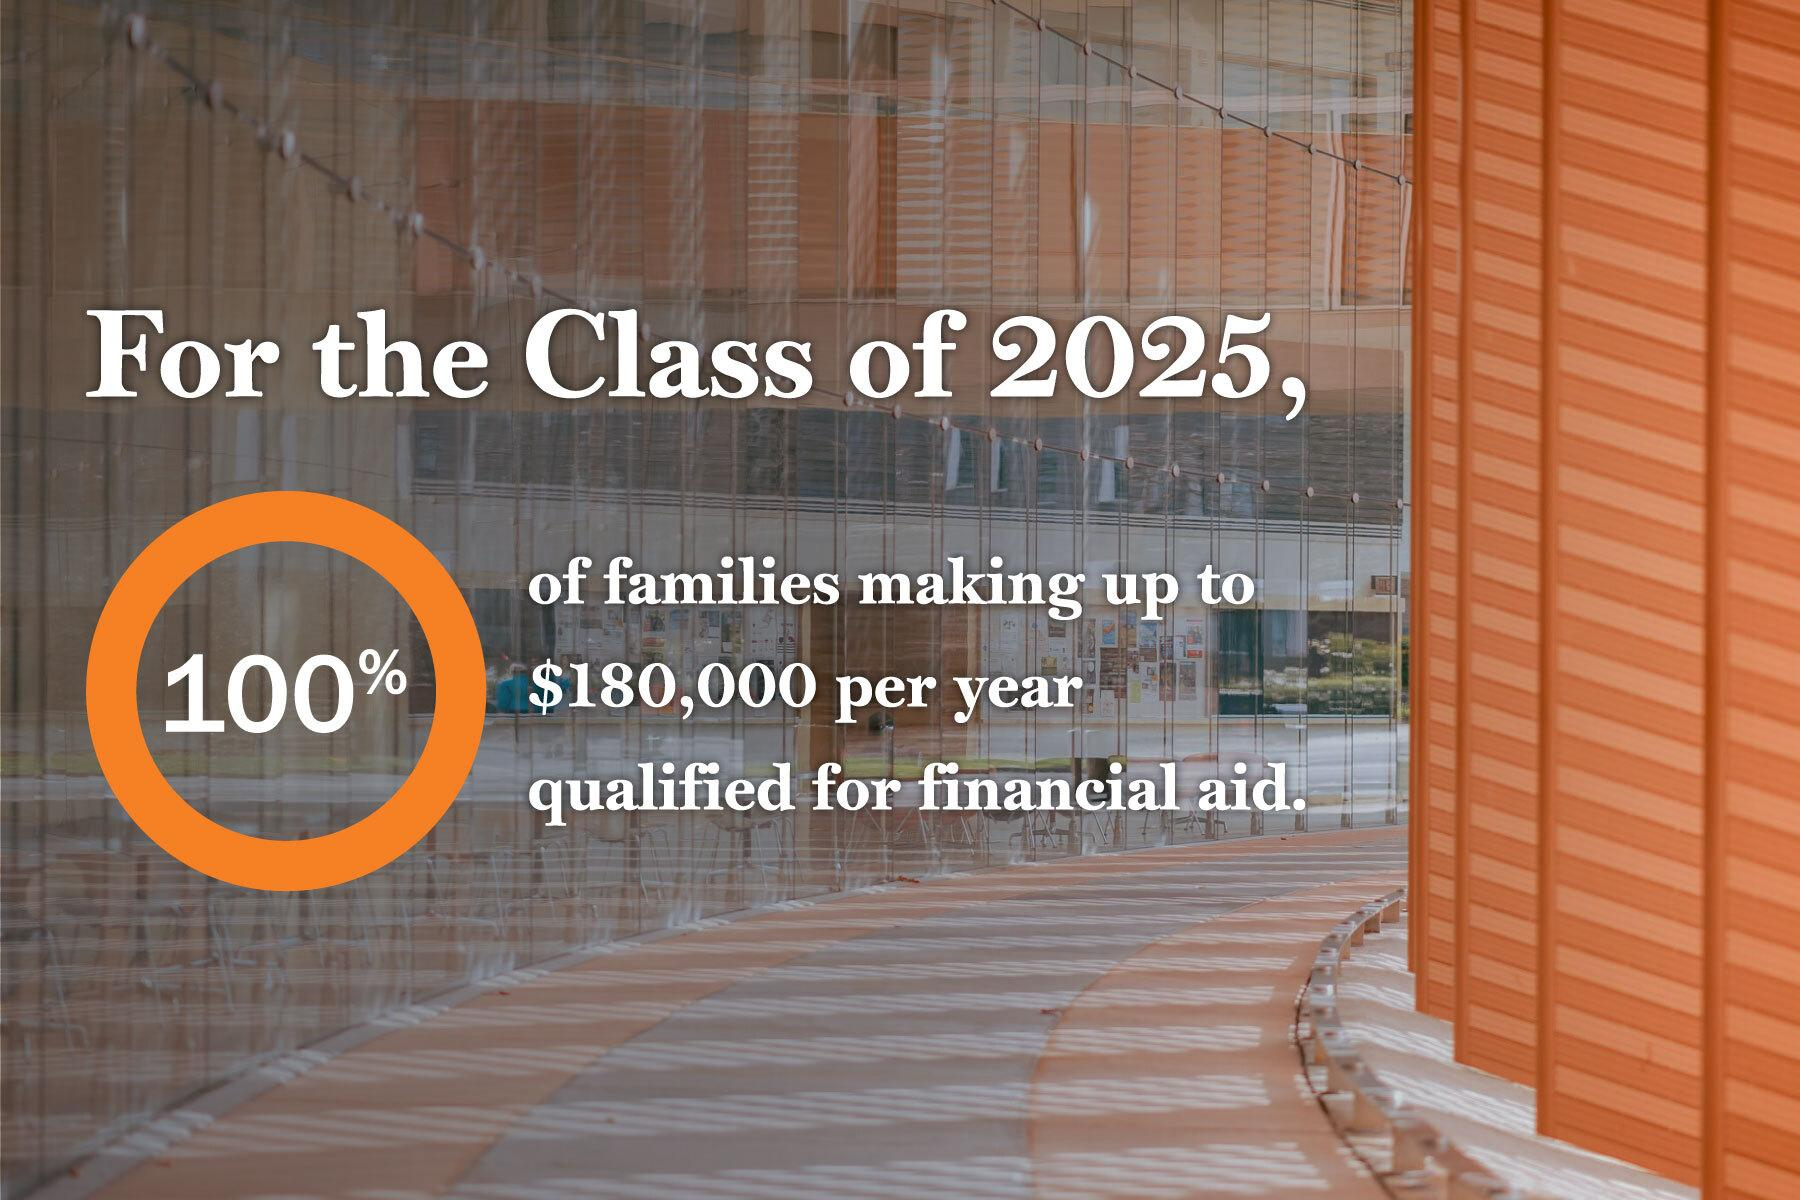 """Text overlay that says """"For the Class of 2025, 100 percent of families making up to $180,000 per year qualified for financial aid"""""""